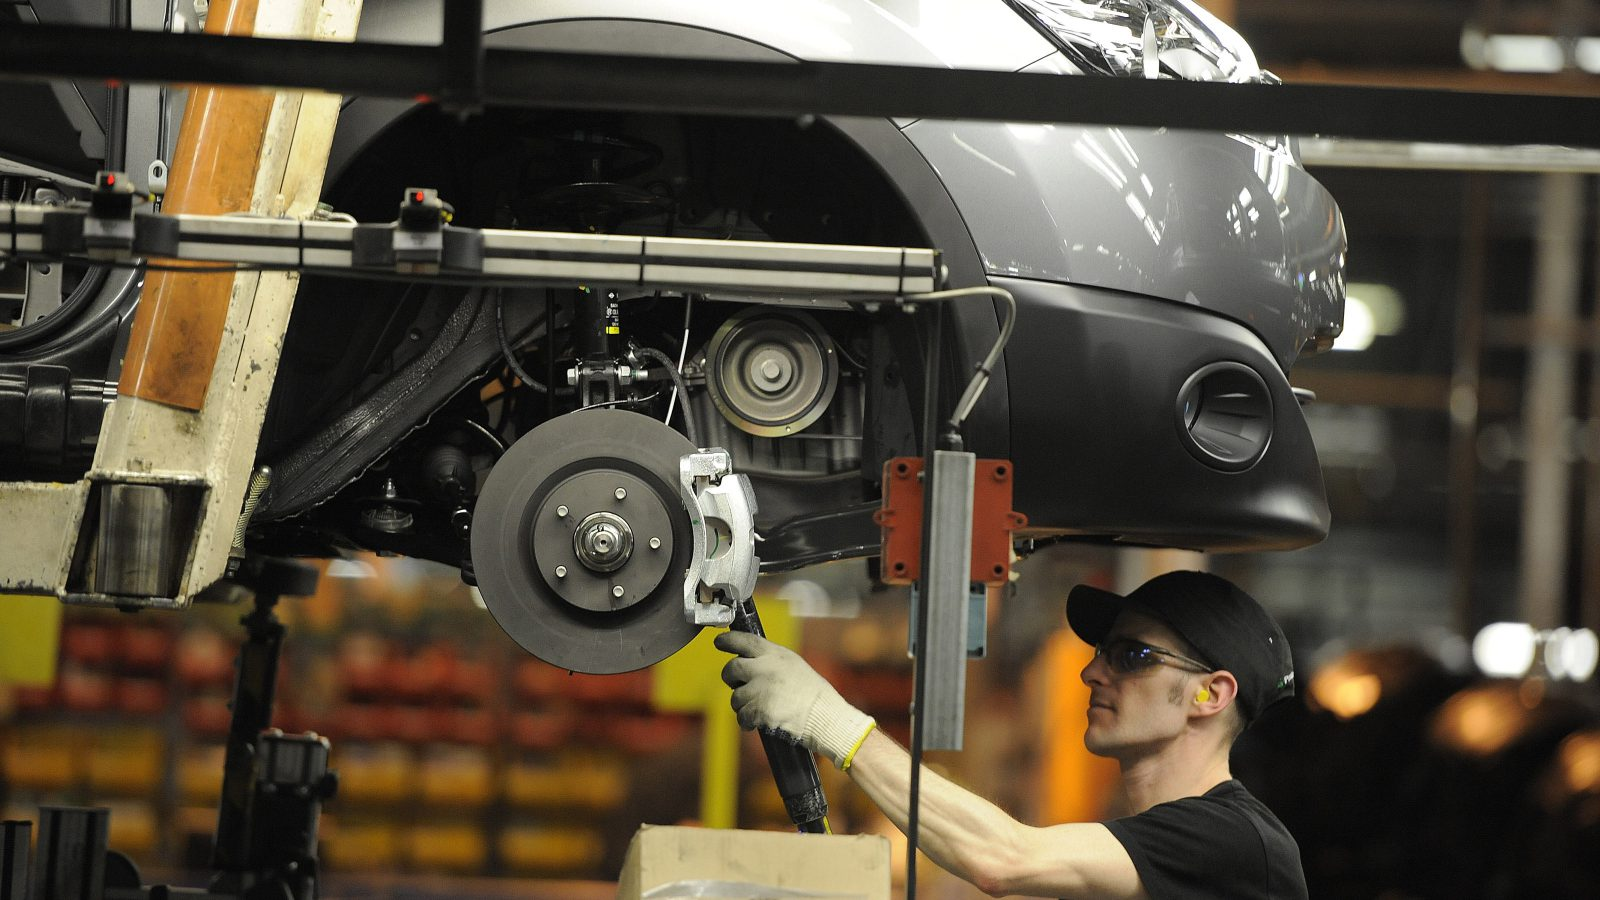 A Nissan technician prepares a Qashqai car at the company's plant in Sunderland, northern England November 9, 2011. REUTERS/Nigel Roddis (BRITAIN - Tags: TRANSPORT SOCIETY BUSINESS EMPLOYMENT PROFILE) - RTR2V8DX